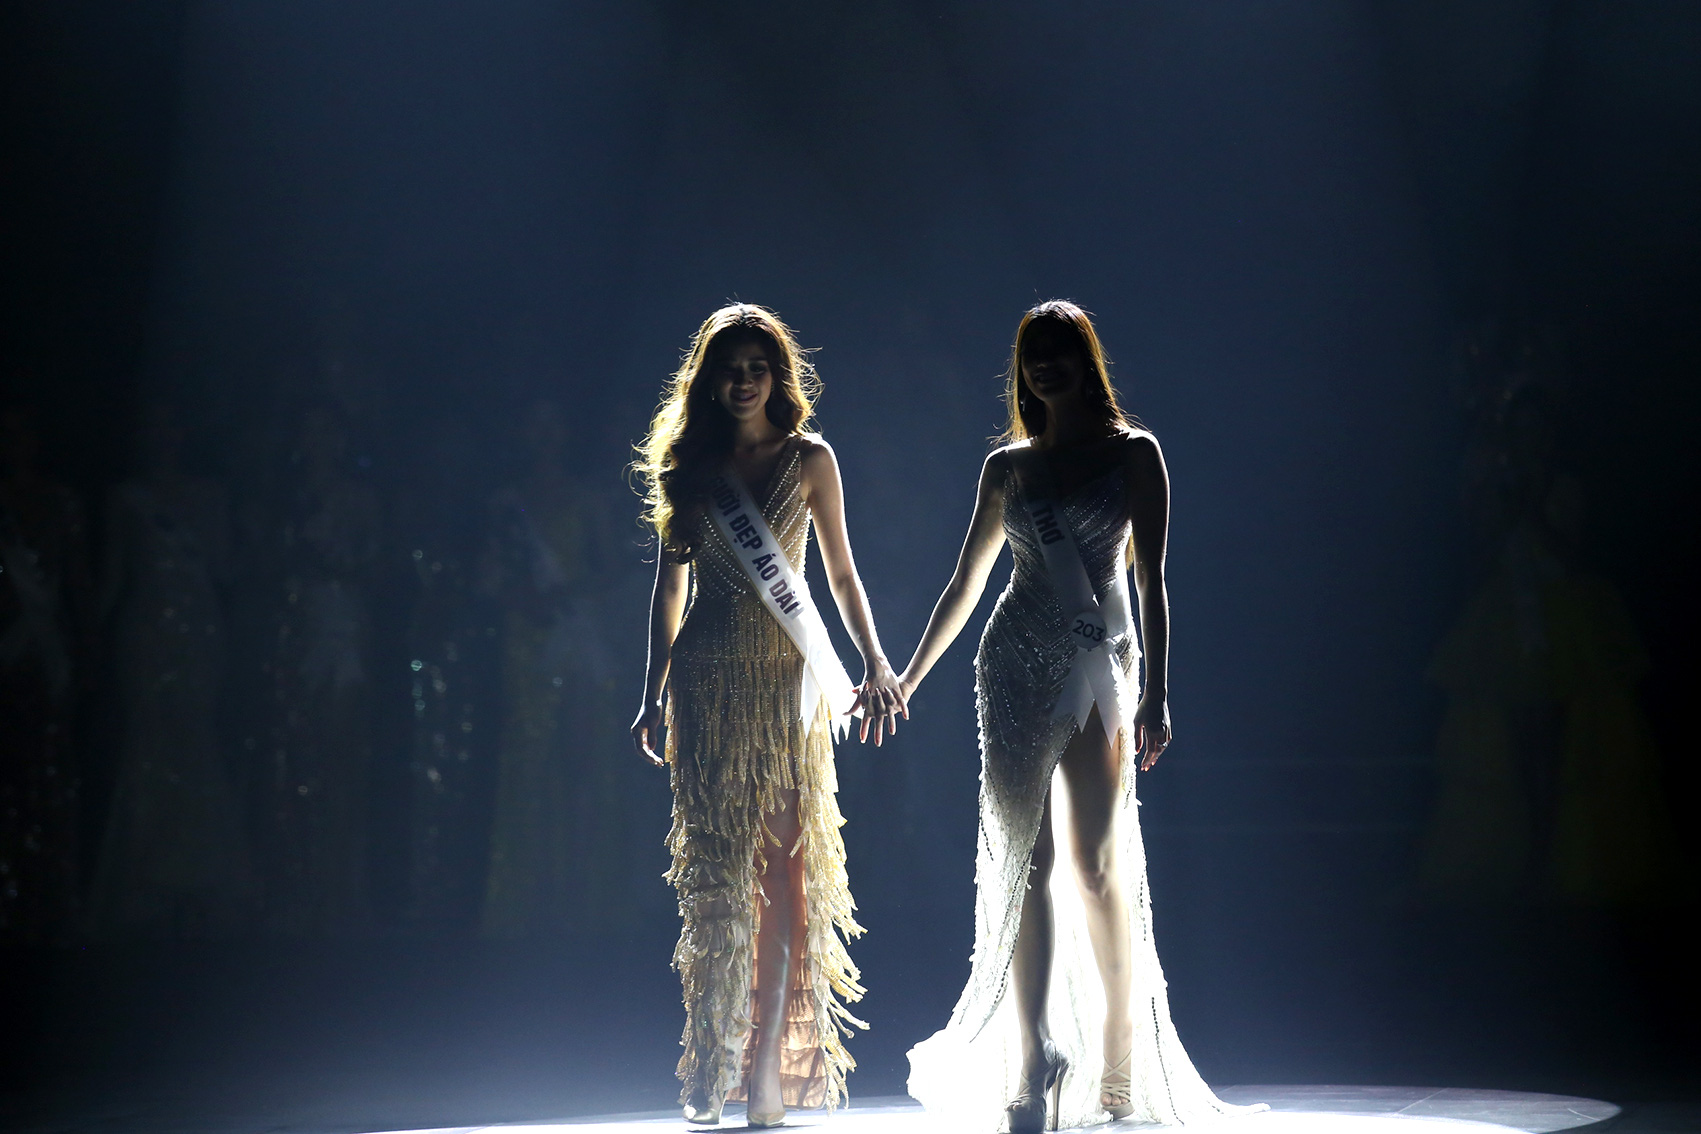 Nguyen Tran Khanh Van and Nguyen Huynh Kim Duyen hold hands as they wait for the final result.